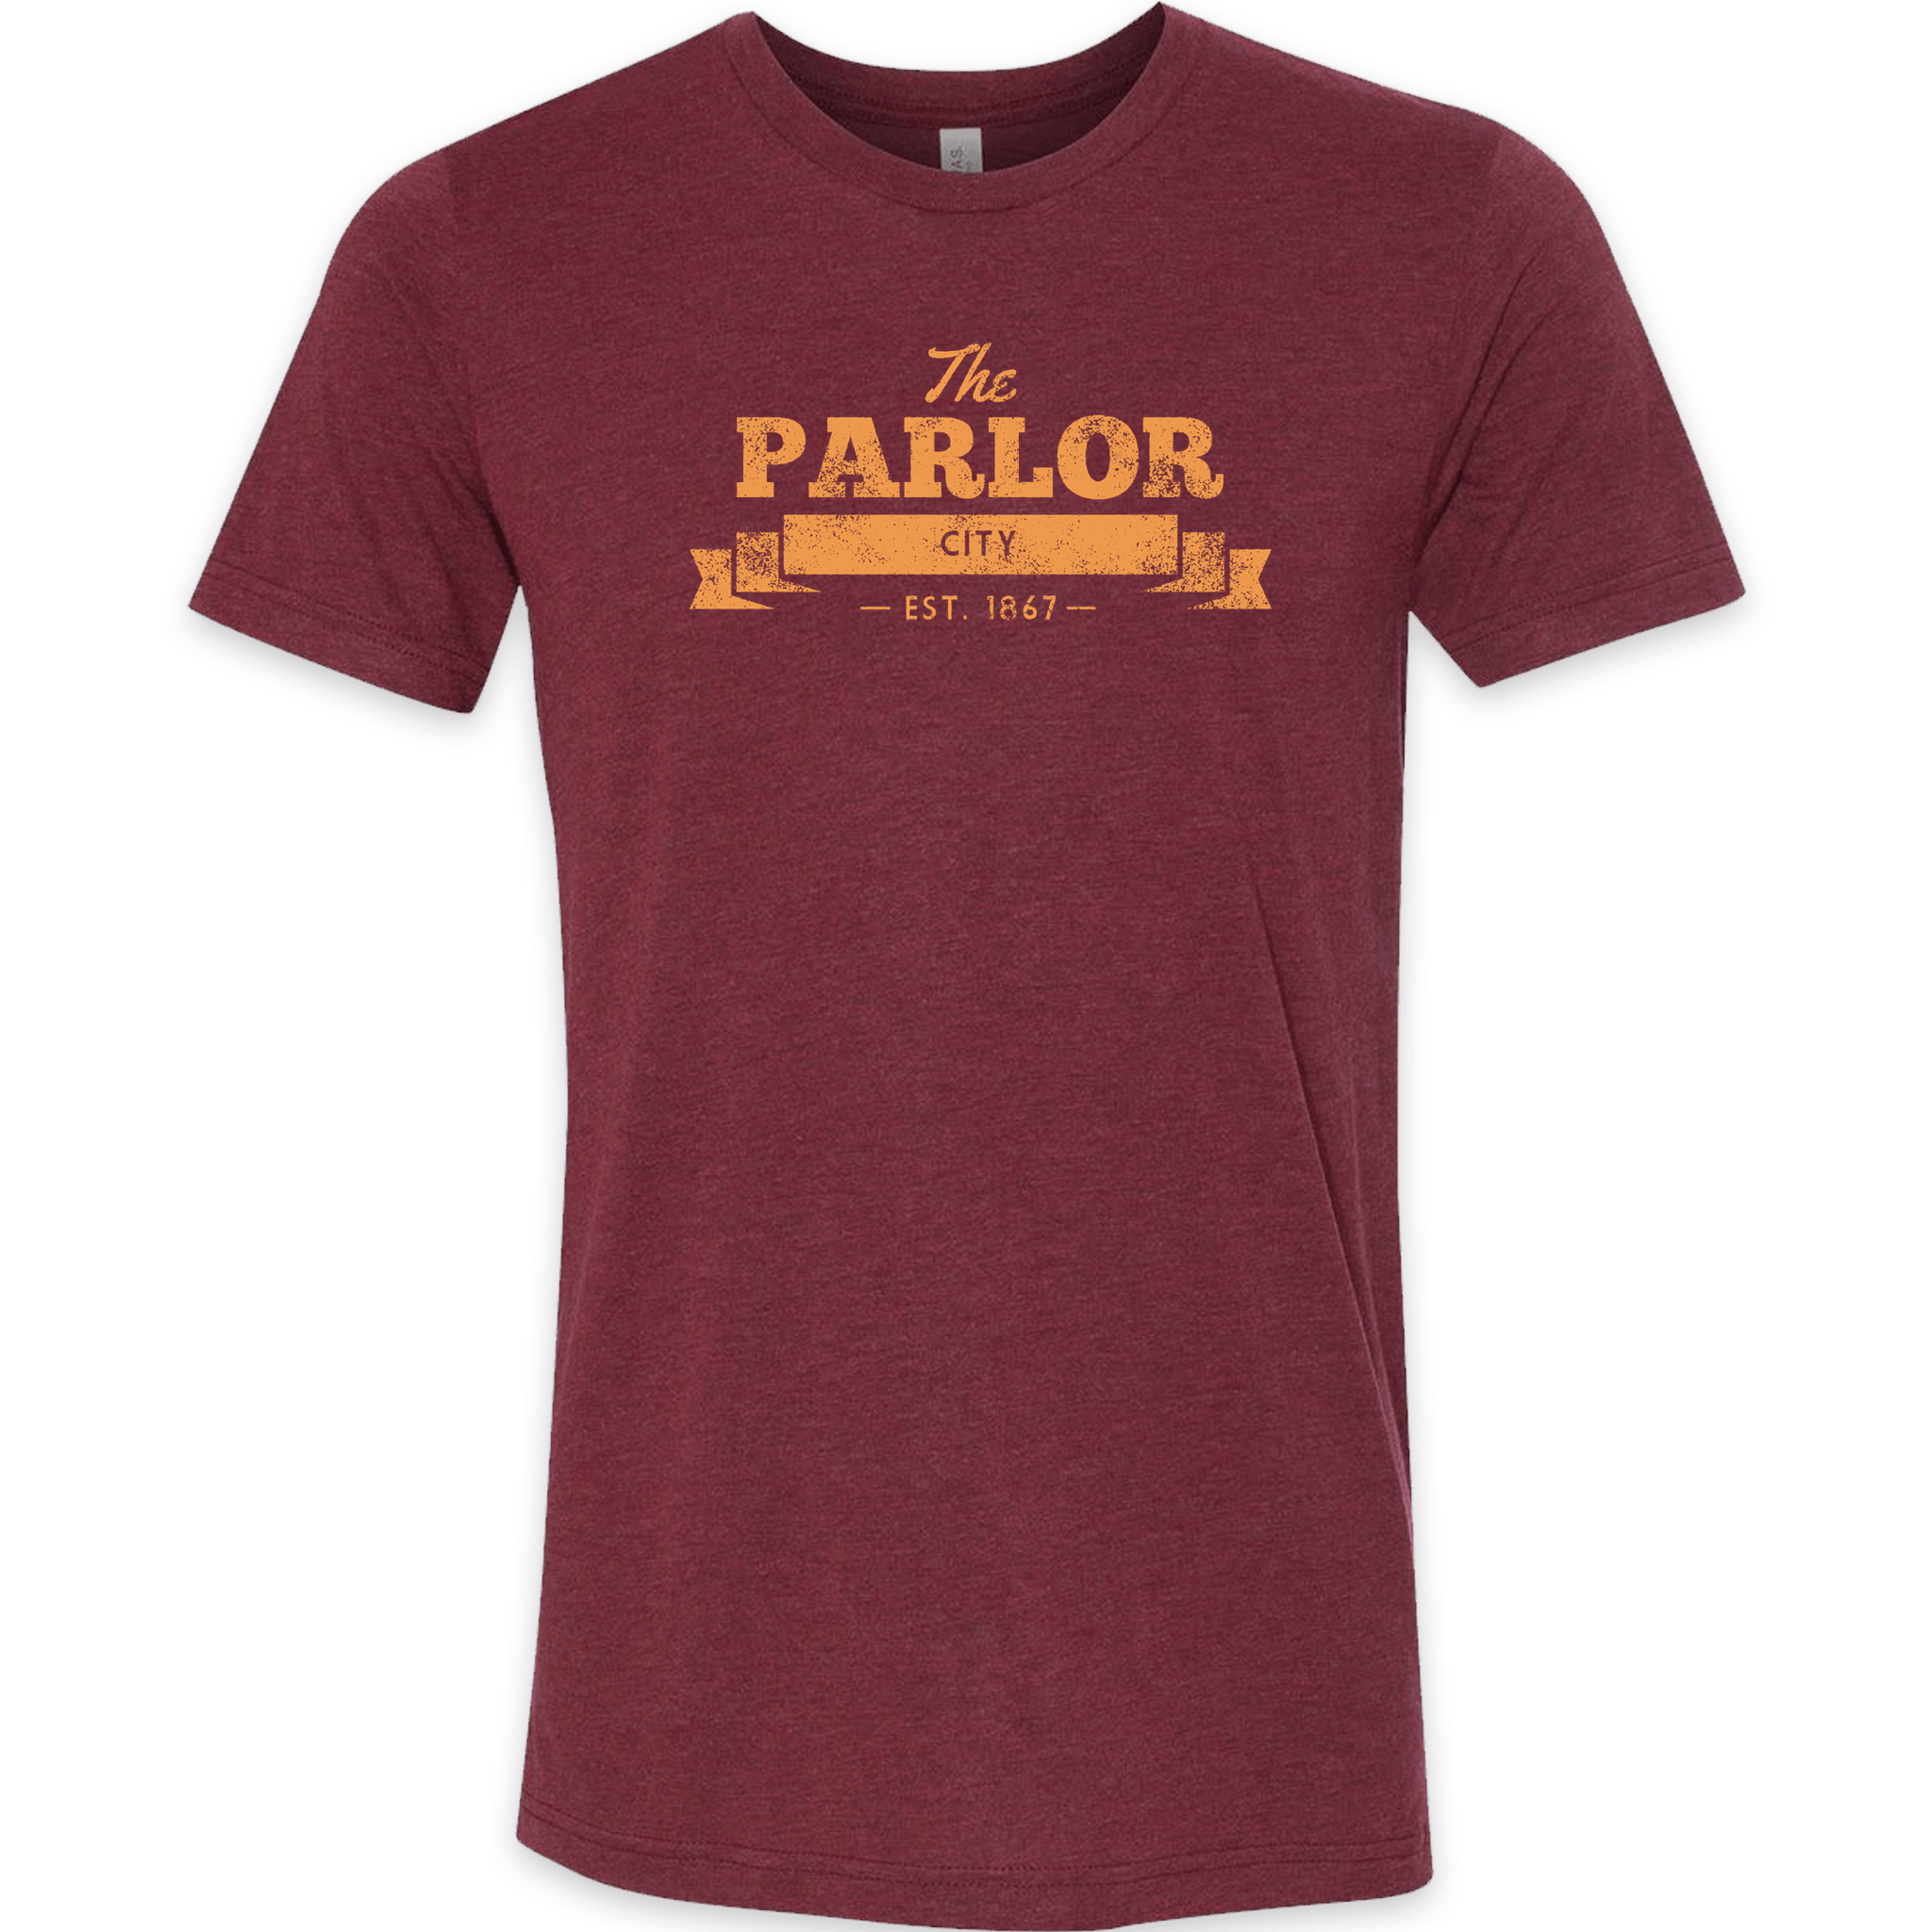 Parlor City Tee